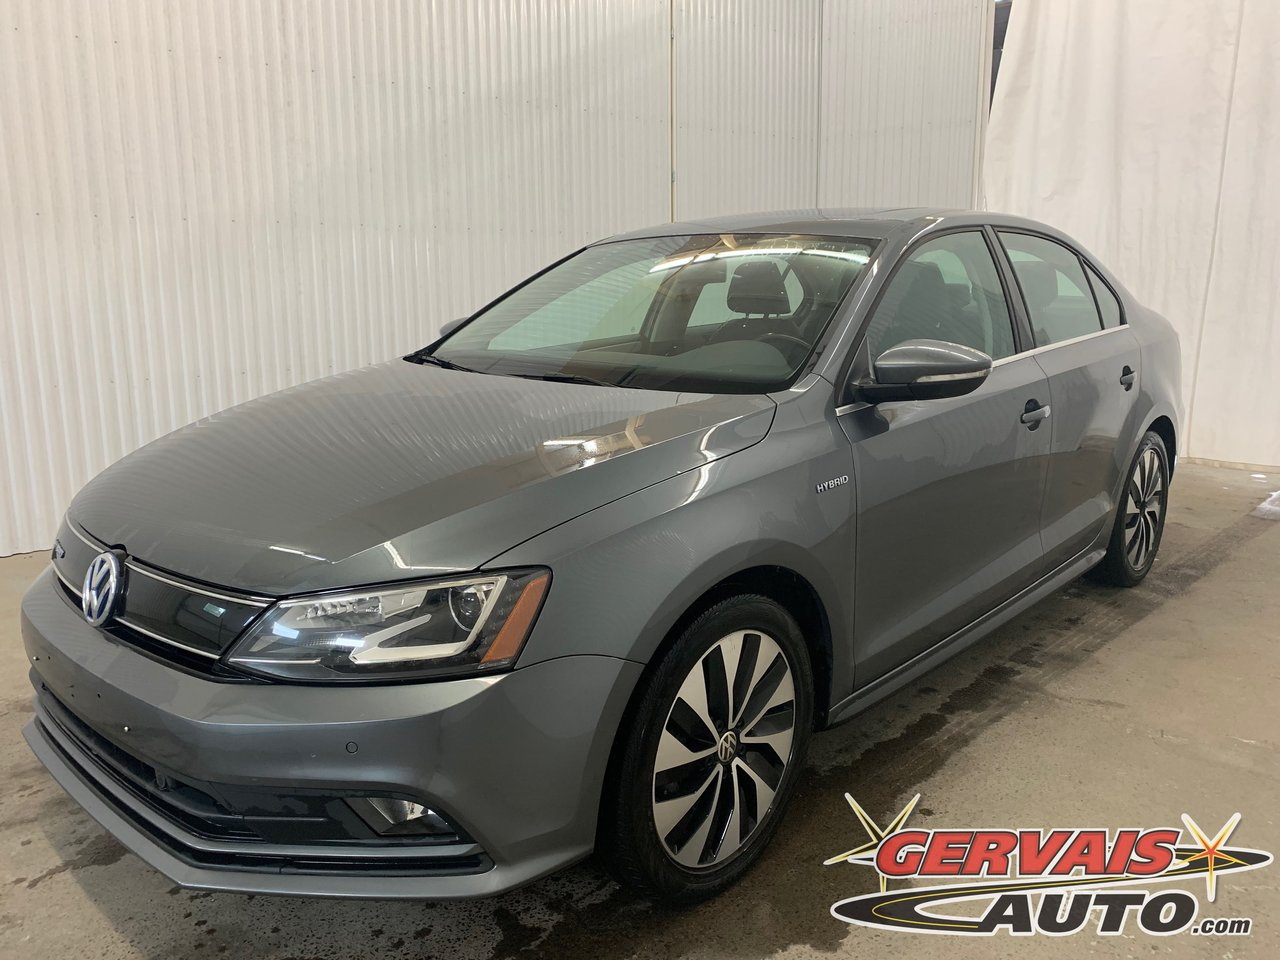 Volkswagen Jetta 2015 Hybride GPS Cuir Toit Ouvrant MAGS